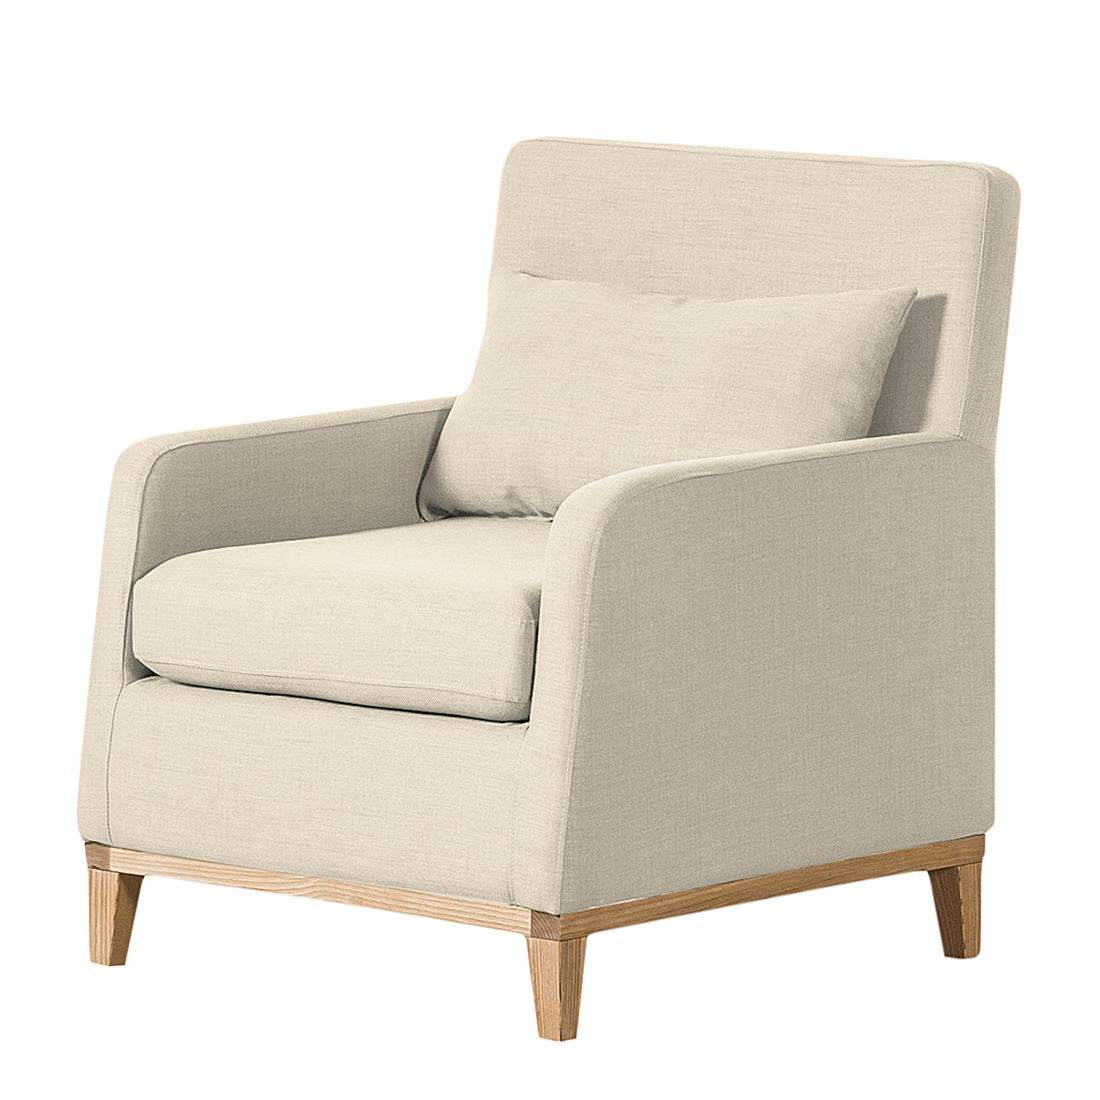 Fauteuil Blomma - Tissu beige - Structure : couleur chêne, Jack and Alice